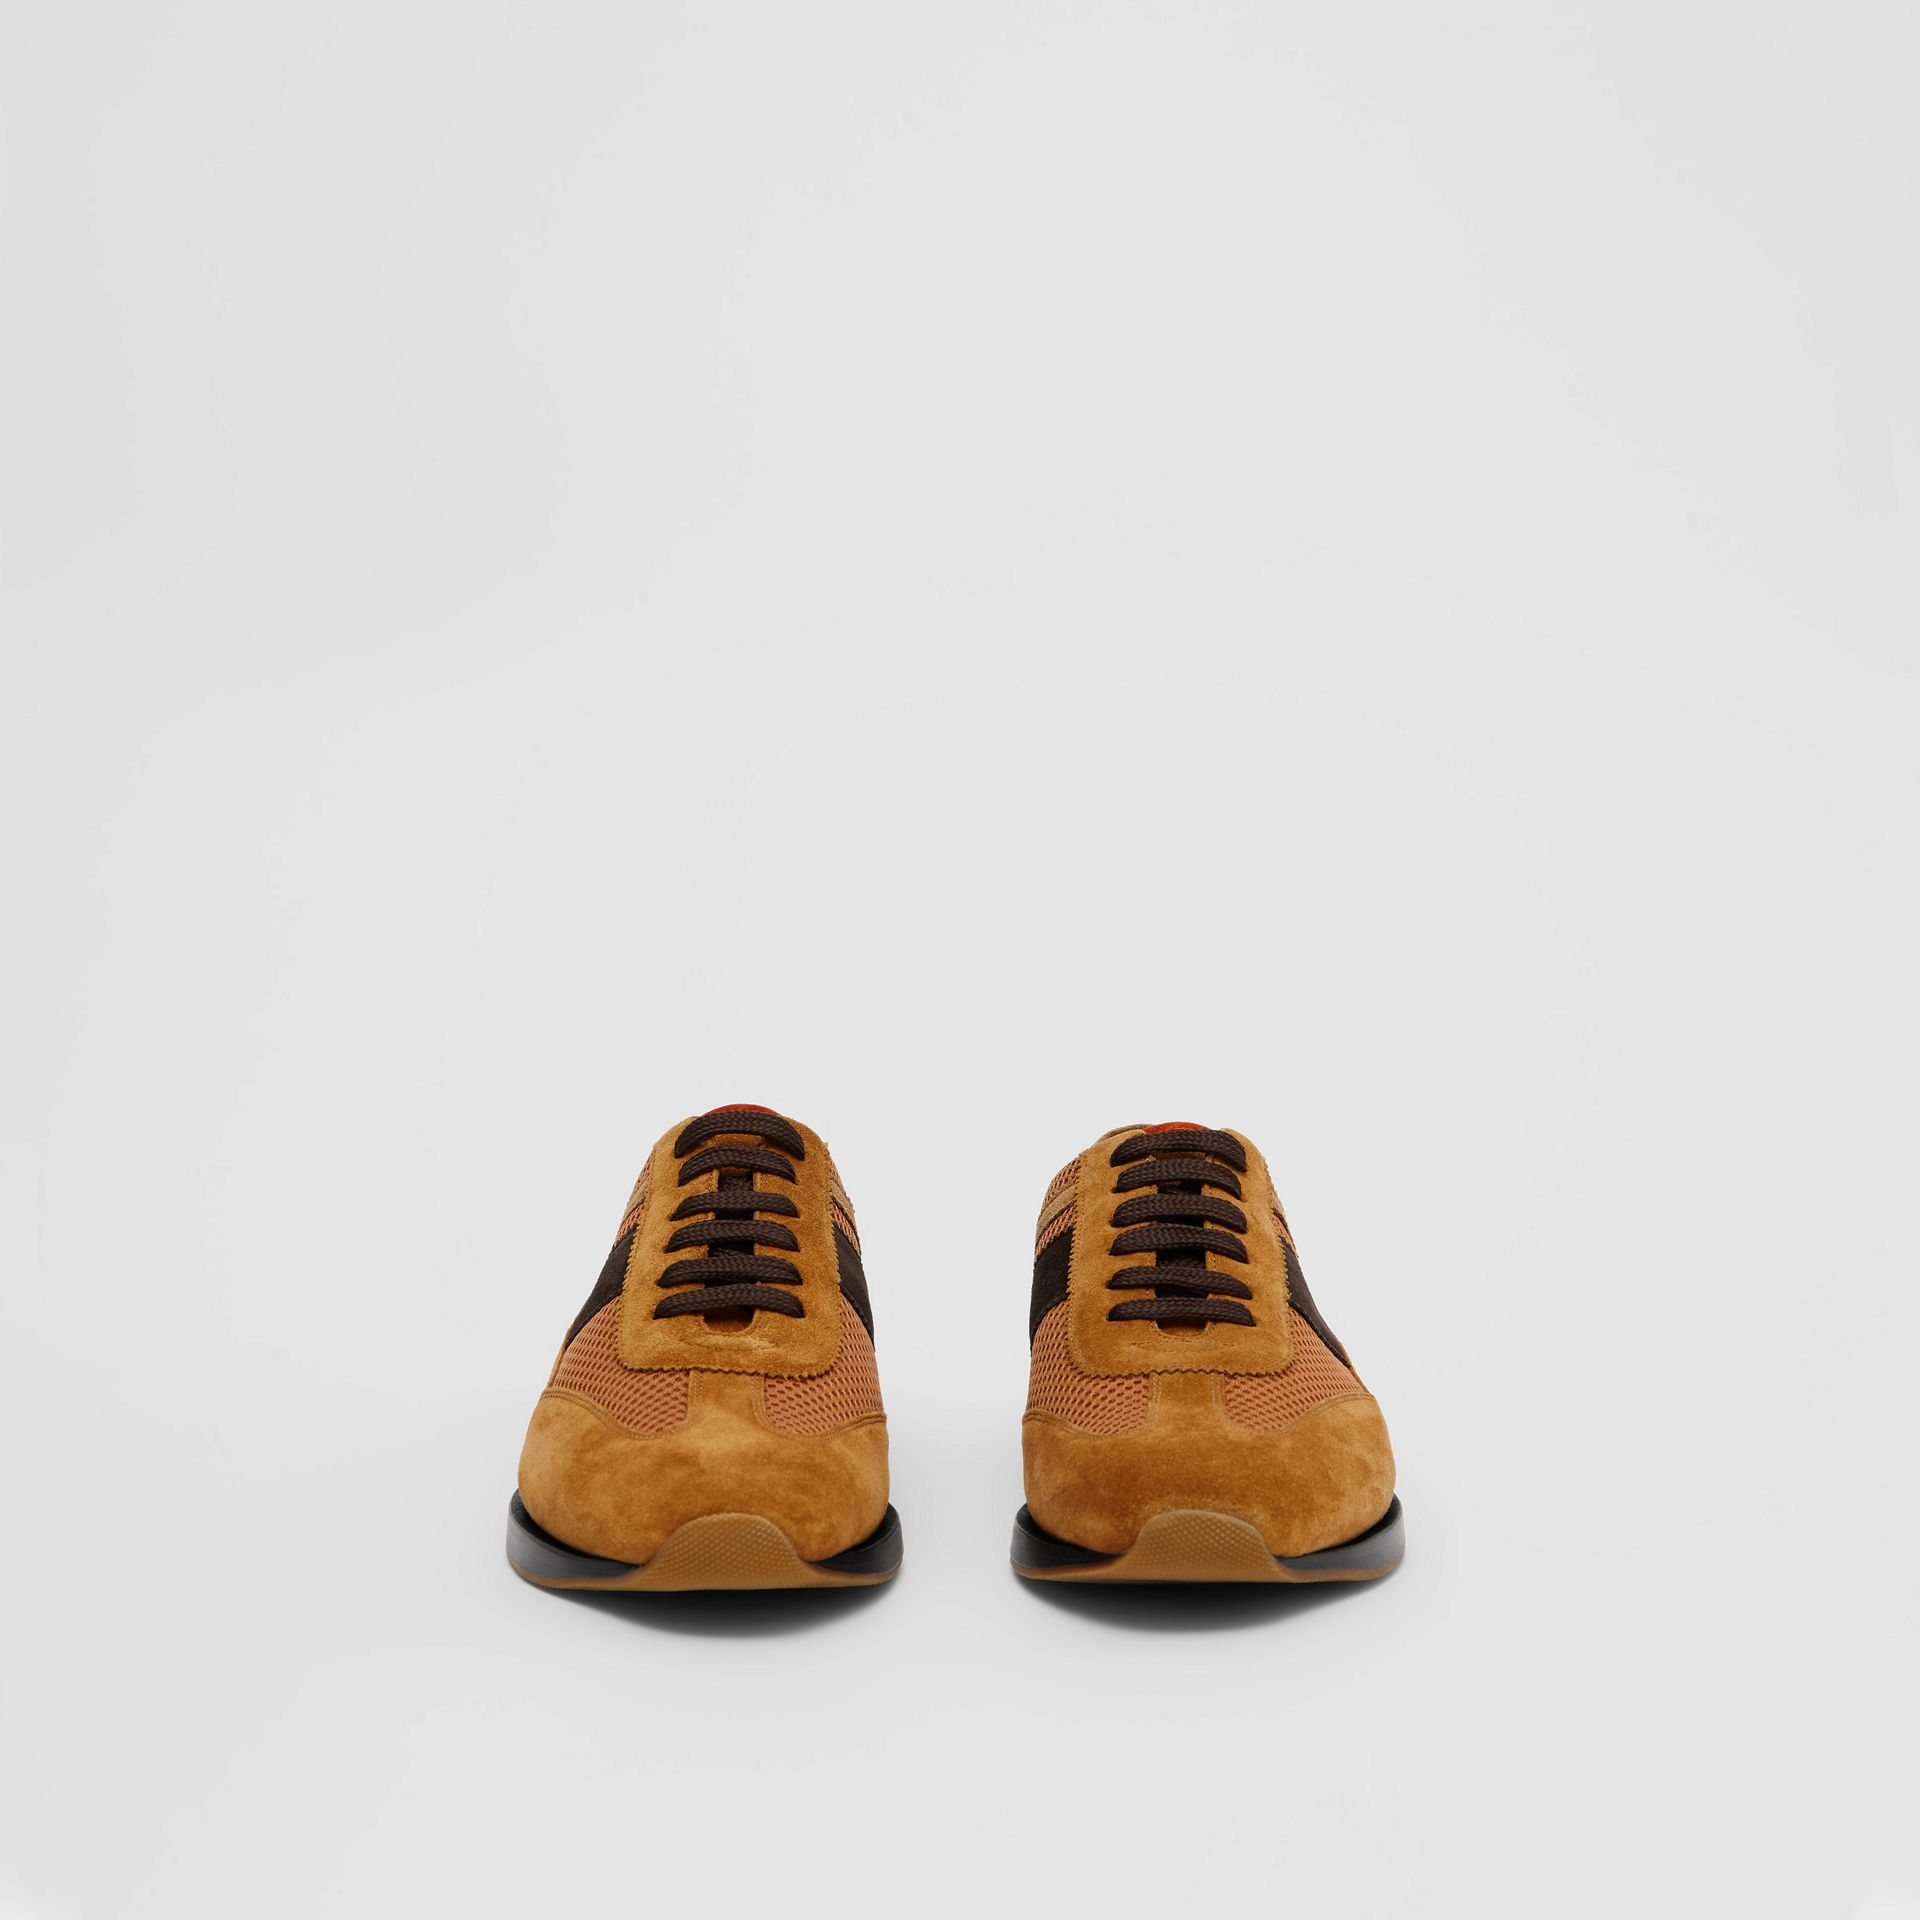 Mesh Panel Suede Lace-up Shoes in Mix Tan - Men | Burberry - gallery image 2